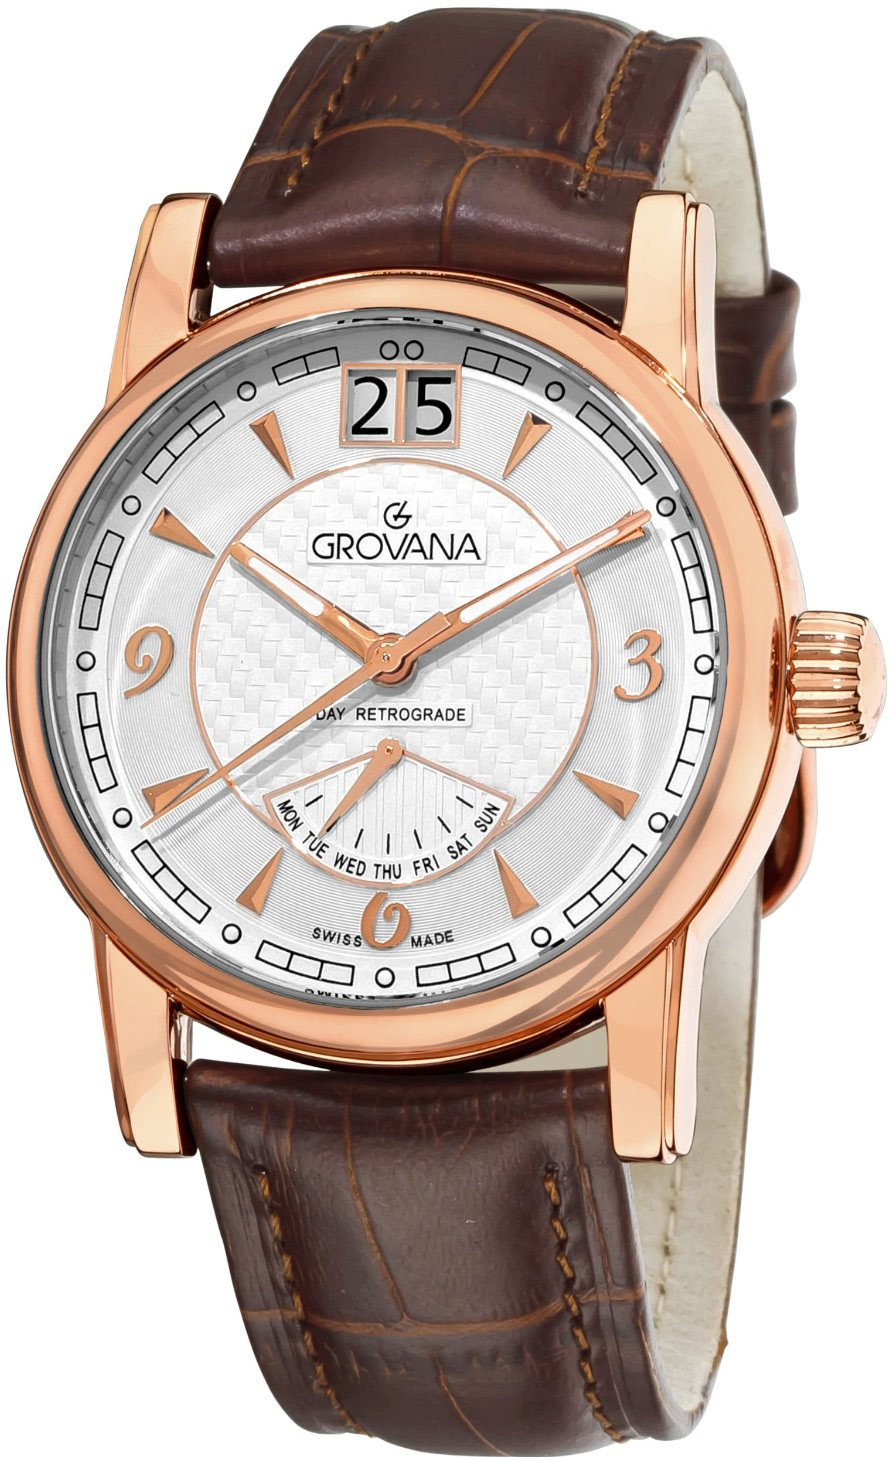 Image of Grovana Day Retrograde Mens Watch Model 1721.1562